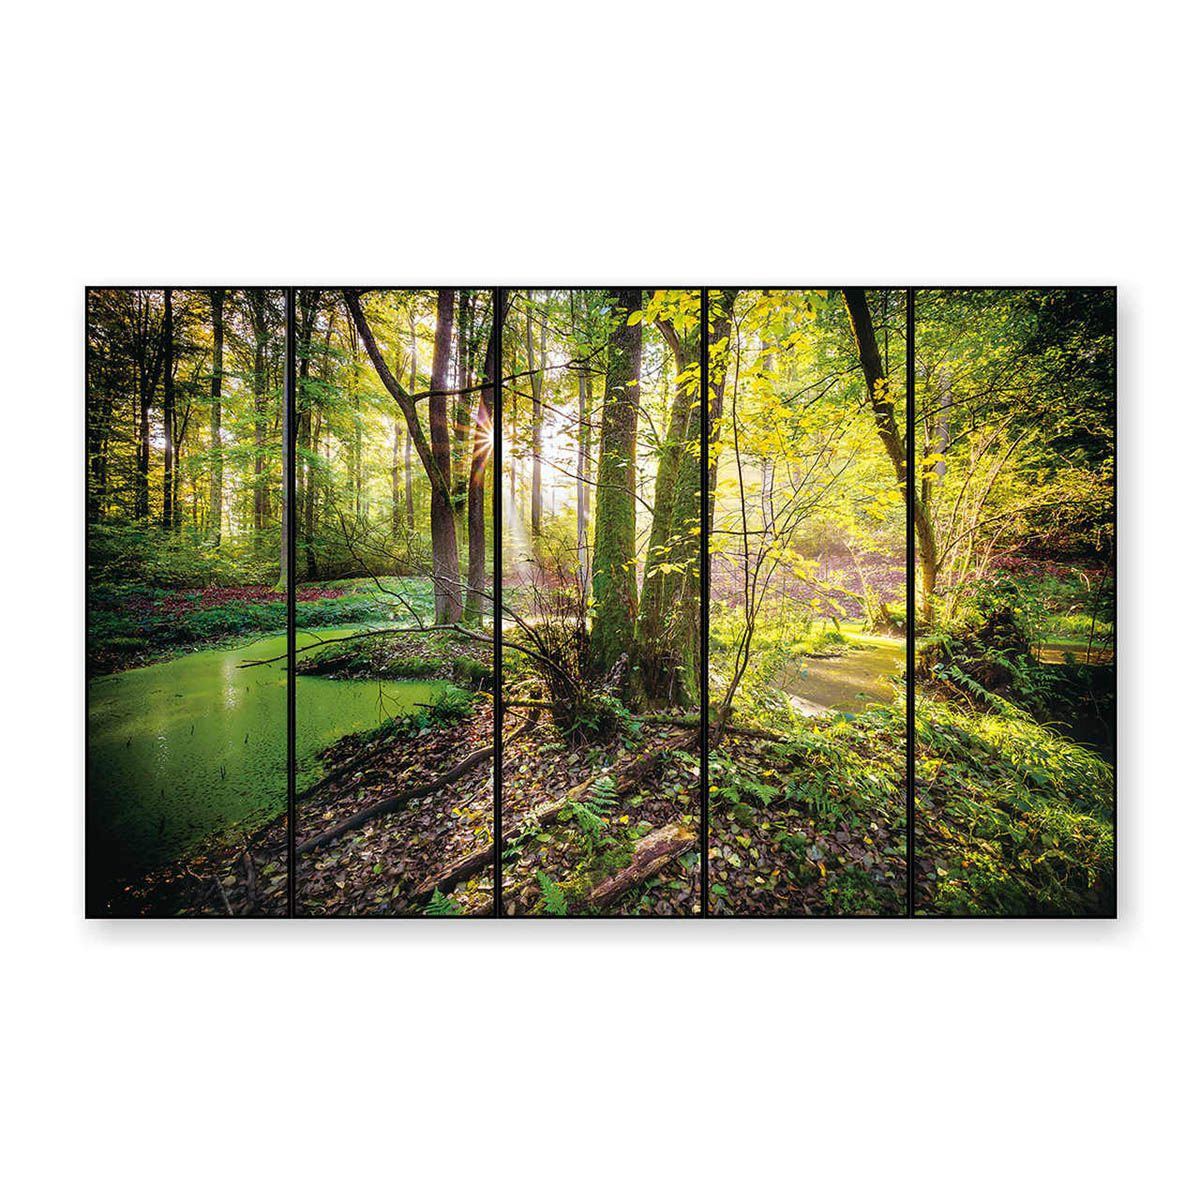 Quadro Decor A Floresta